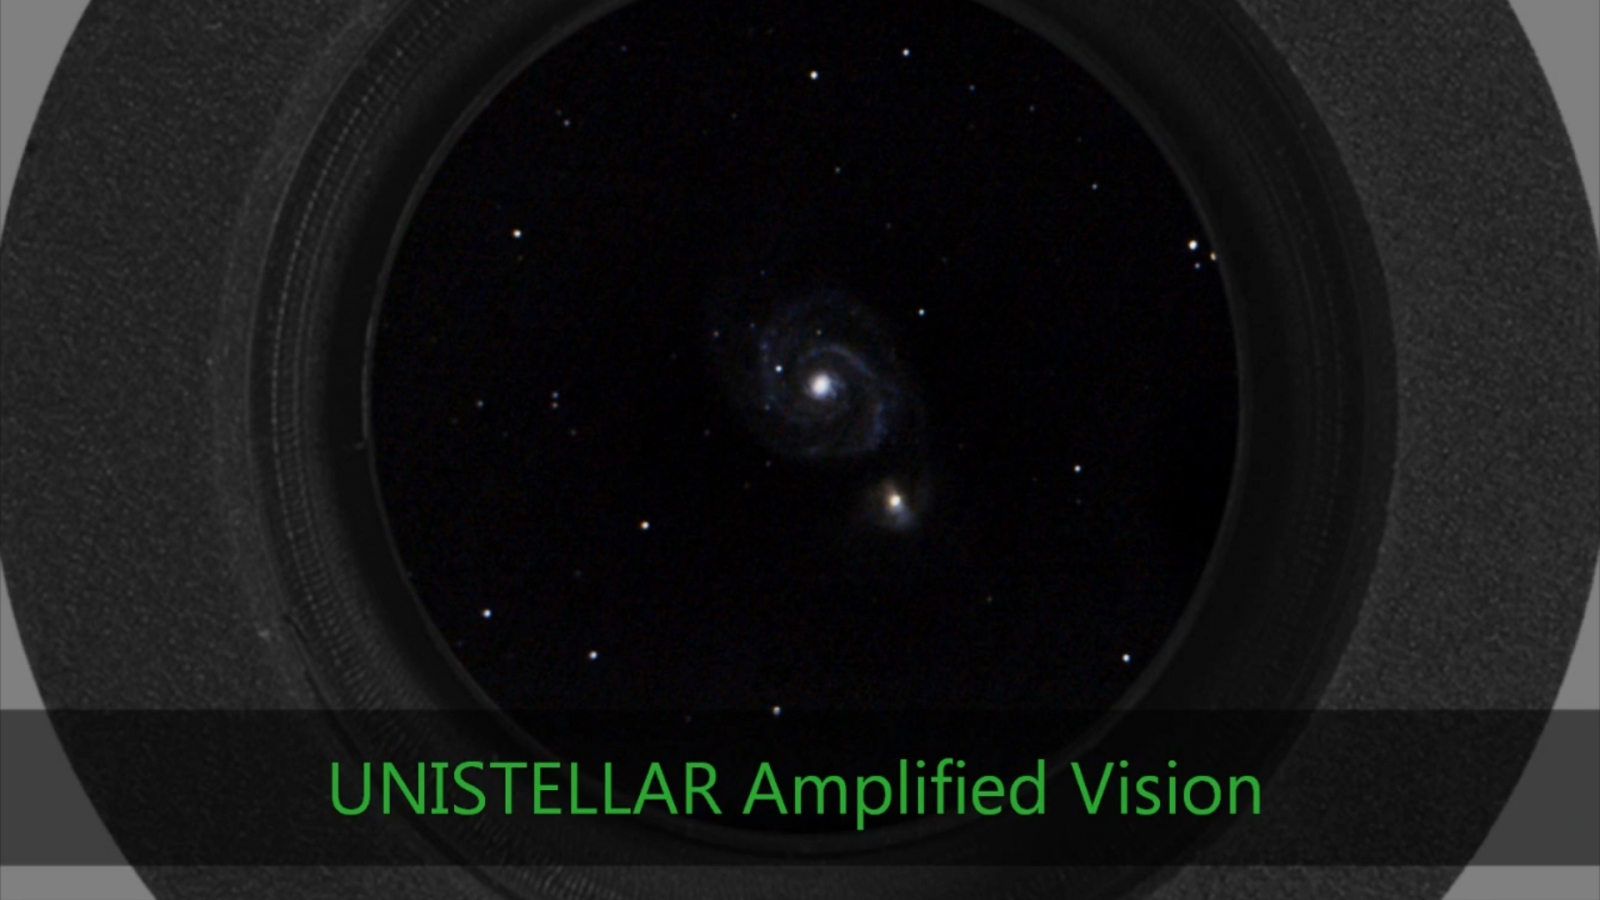 Unistellar amplified vision of the universe